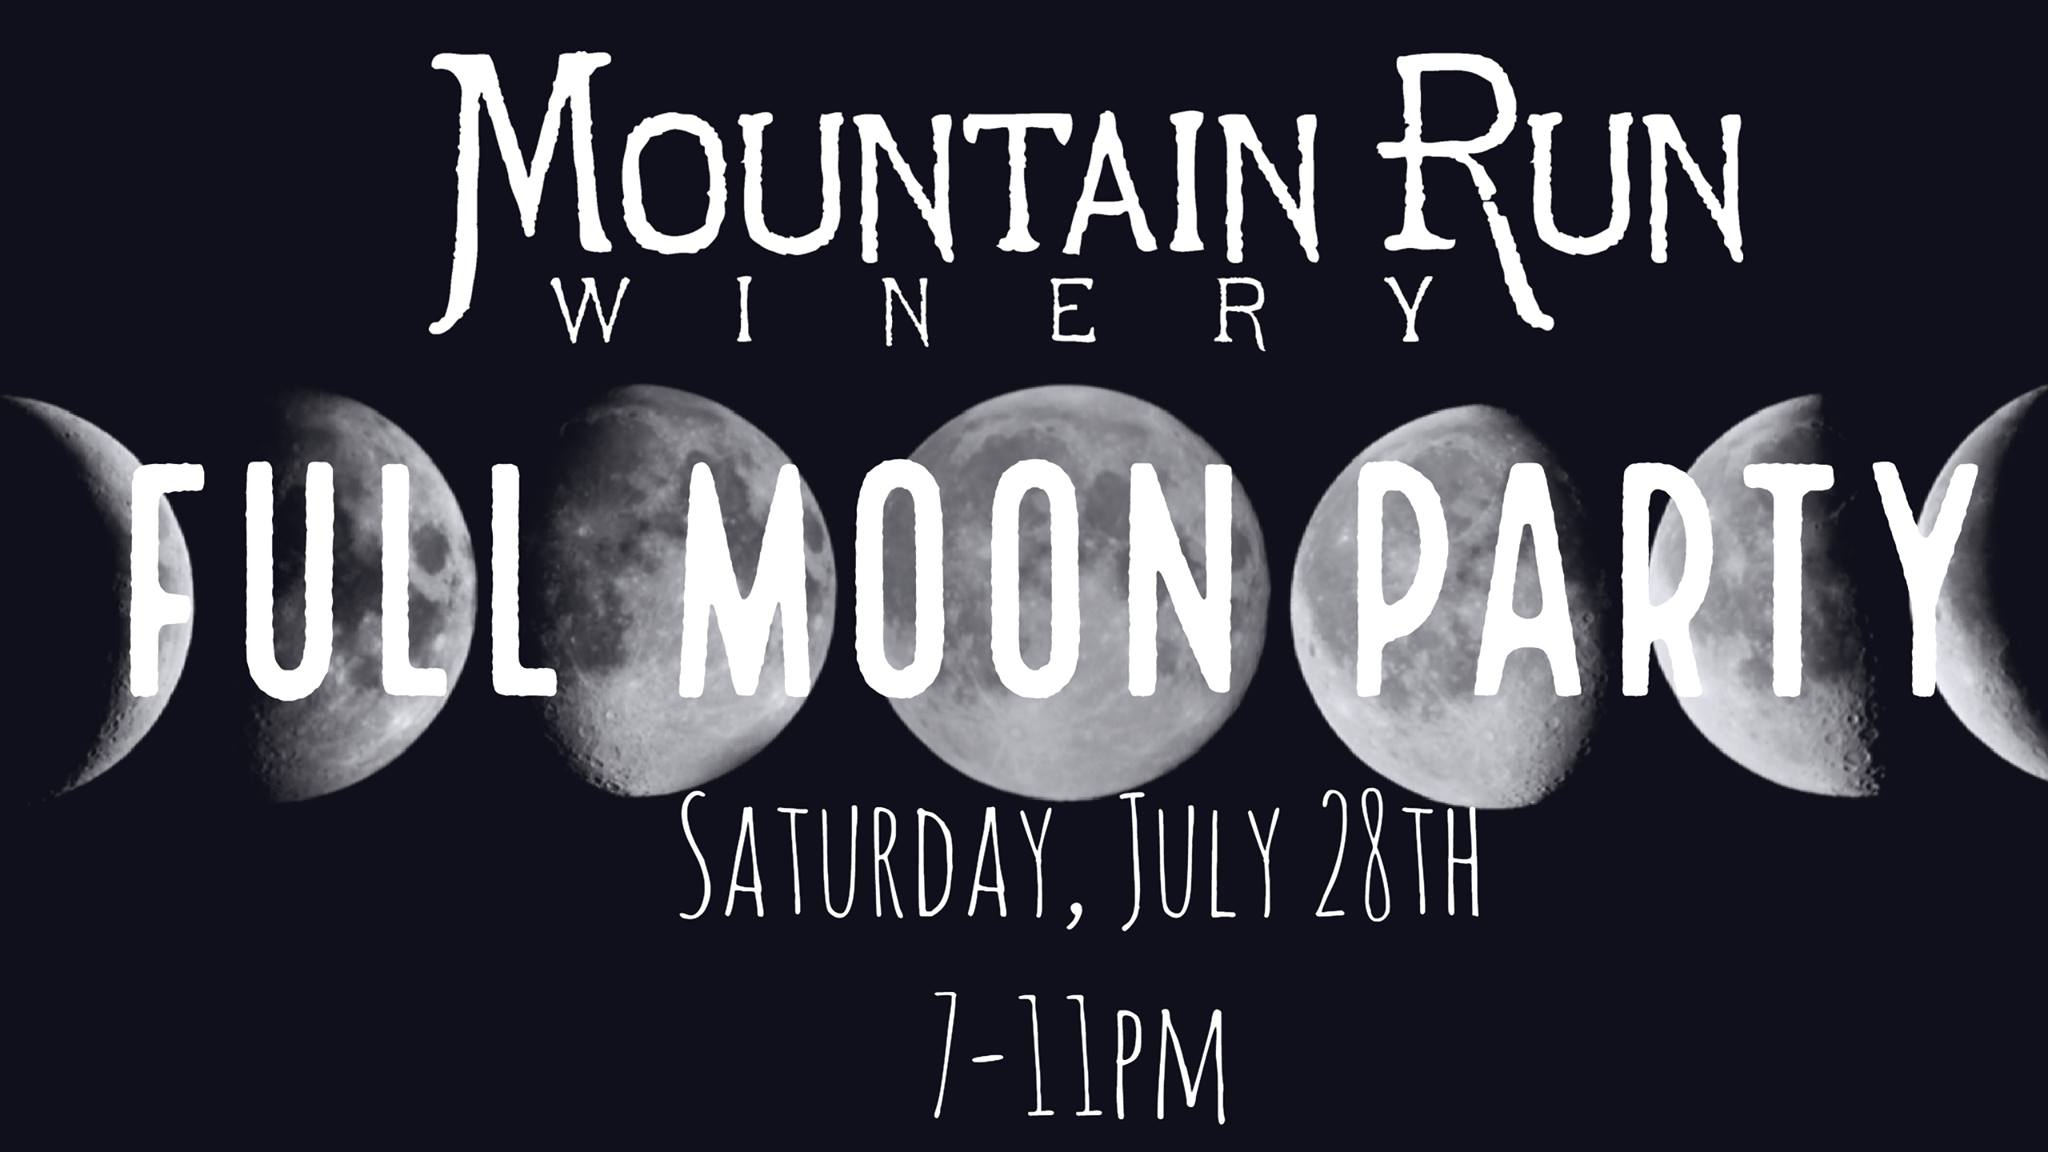 Culpeper-Culpeper-VA-VA-Outdoors-Outside-Full-Moon-Party-Mountain-Run-Winery-Music-Games-90s-music-Fun-Food-Why-Not-Grill-Wine-Summer